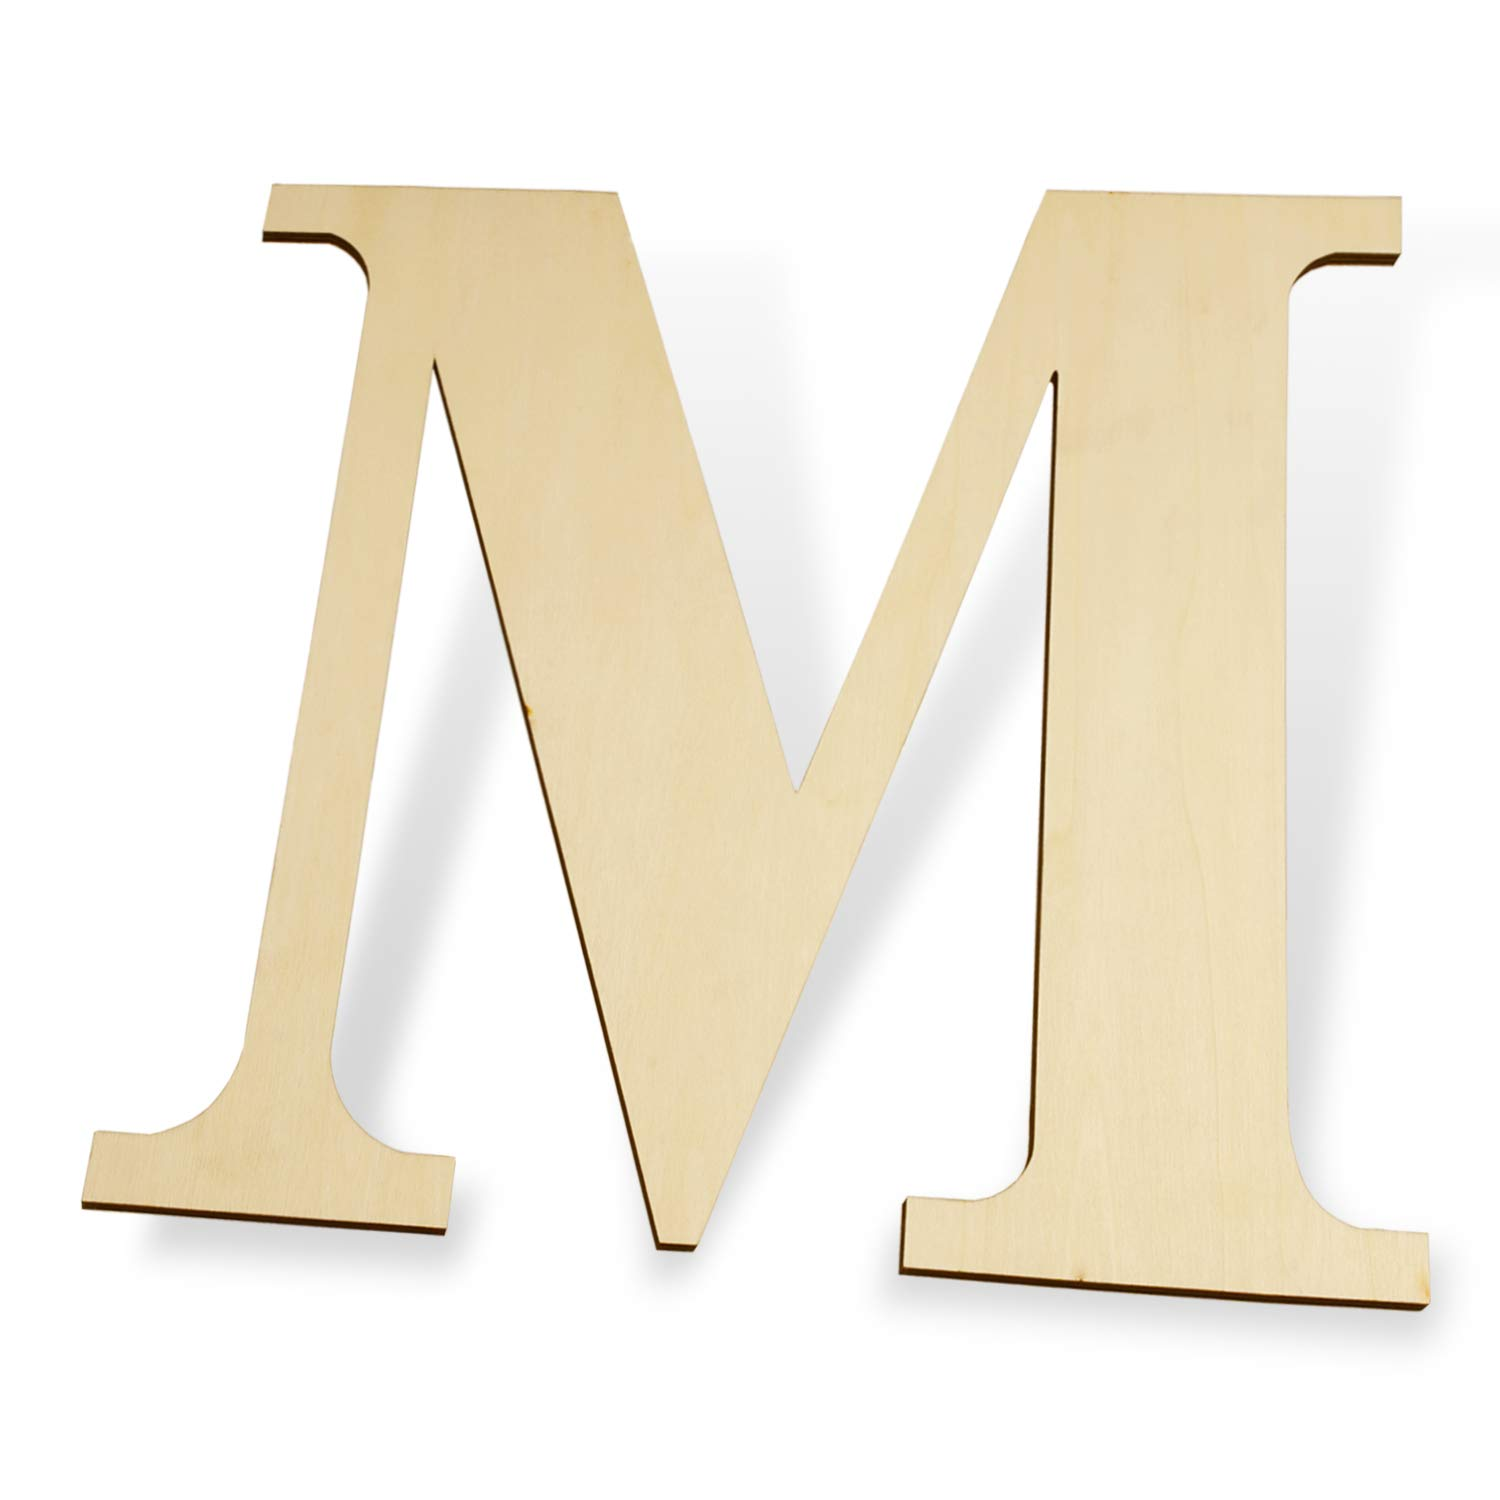 "12 inch Wooden Letters M - Blank Wood Board, Wood Letters for Walls Decor, Party, DIY Craft Projects (12"" - 1/4"" Thick, M)"